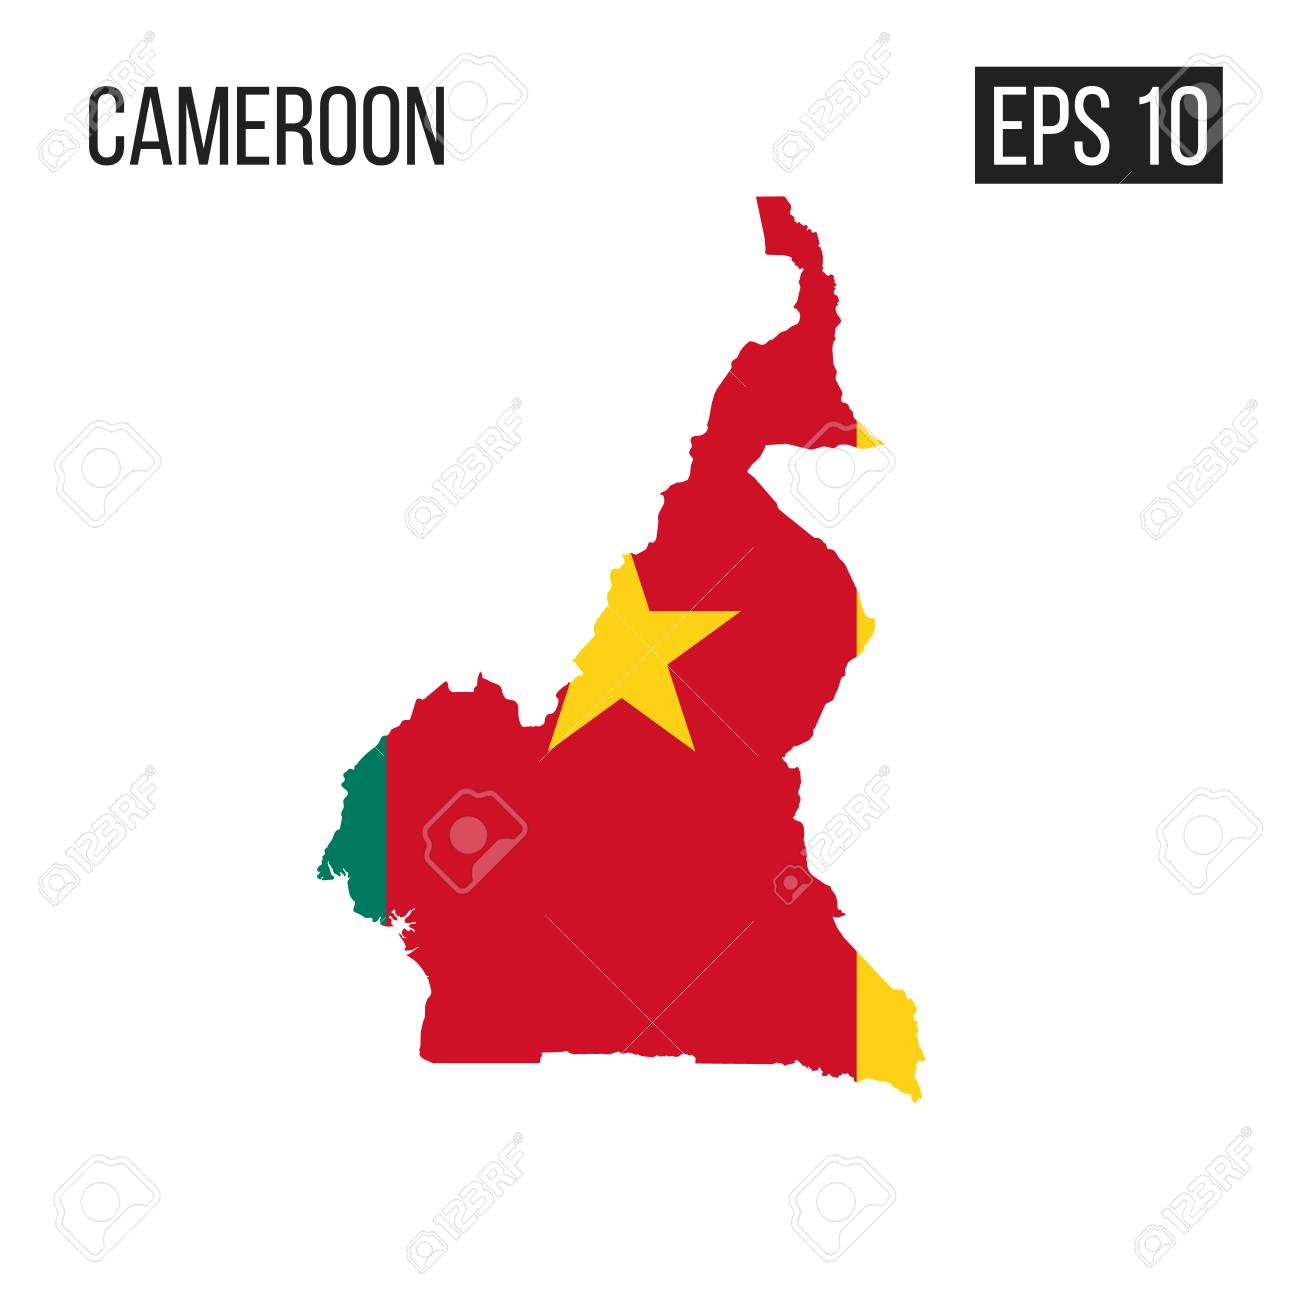 Cameroon Map Border With Flag Vector EPS10 Royalty Free Cliparts